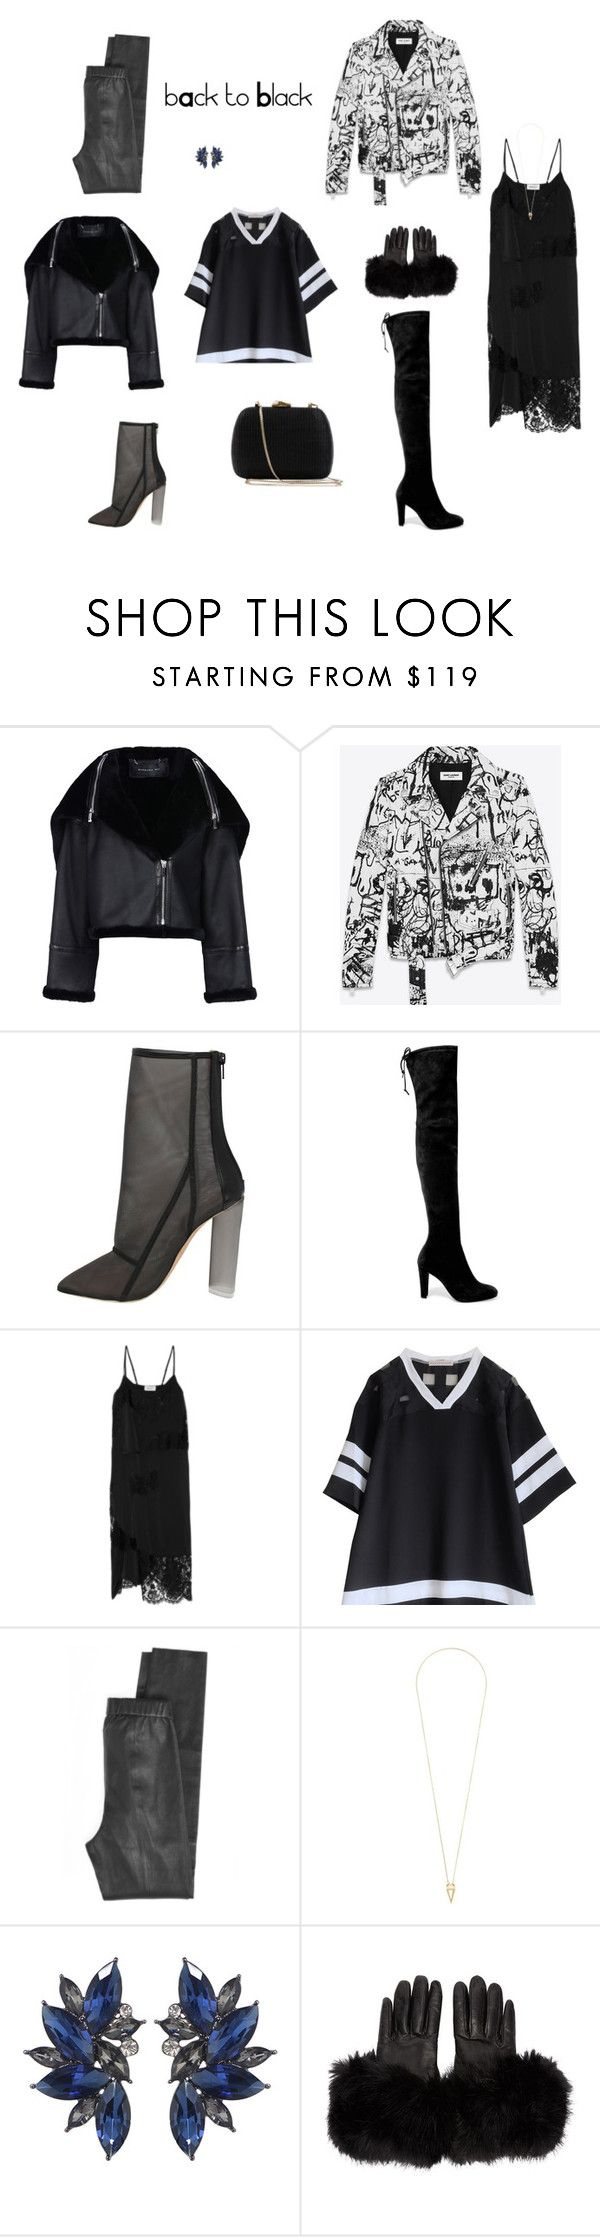 Без названия #4 by neiman-bags on Polyvore featuring мода, DKNY, Yves Saint Laurent, Barbara Bui, Calypso St. Barth, Stuart Weitzman, Serpui, Noor Fares and Calvin Klein Collection